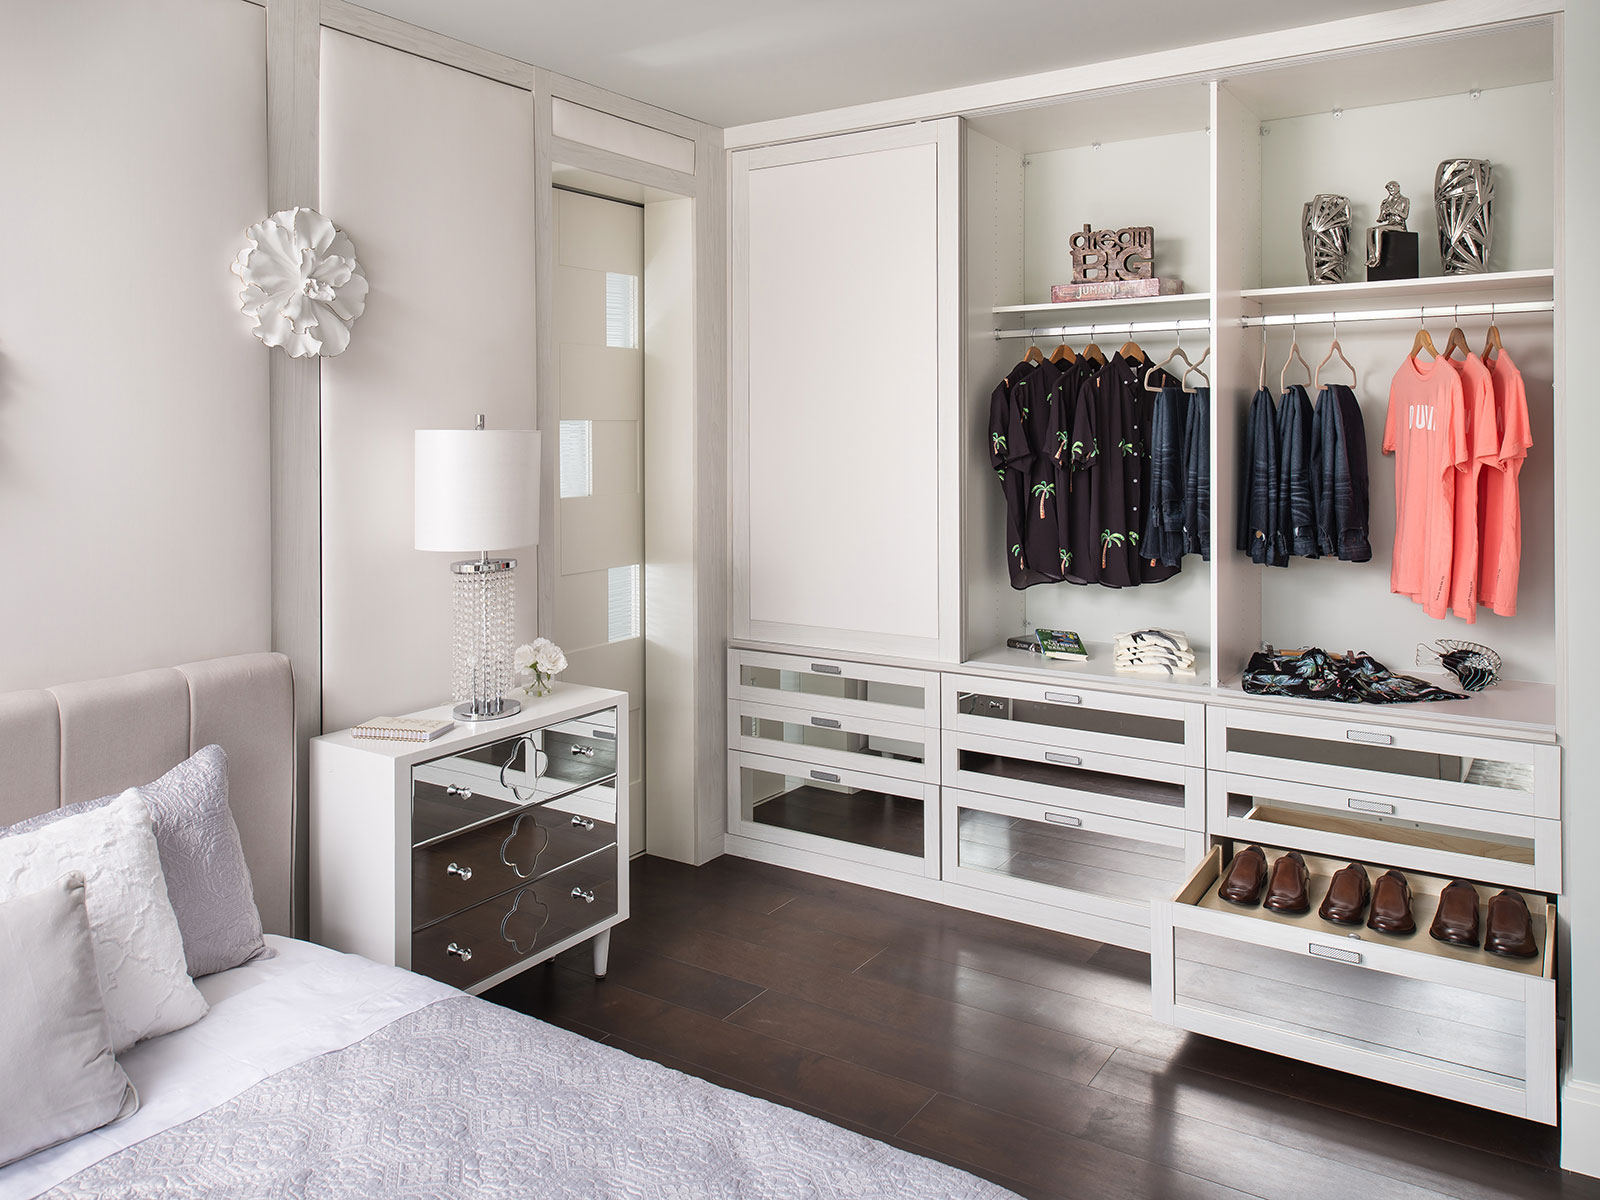 Wardrobe Units For Bedroom | Home design ideas